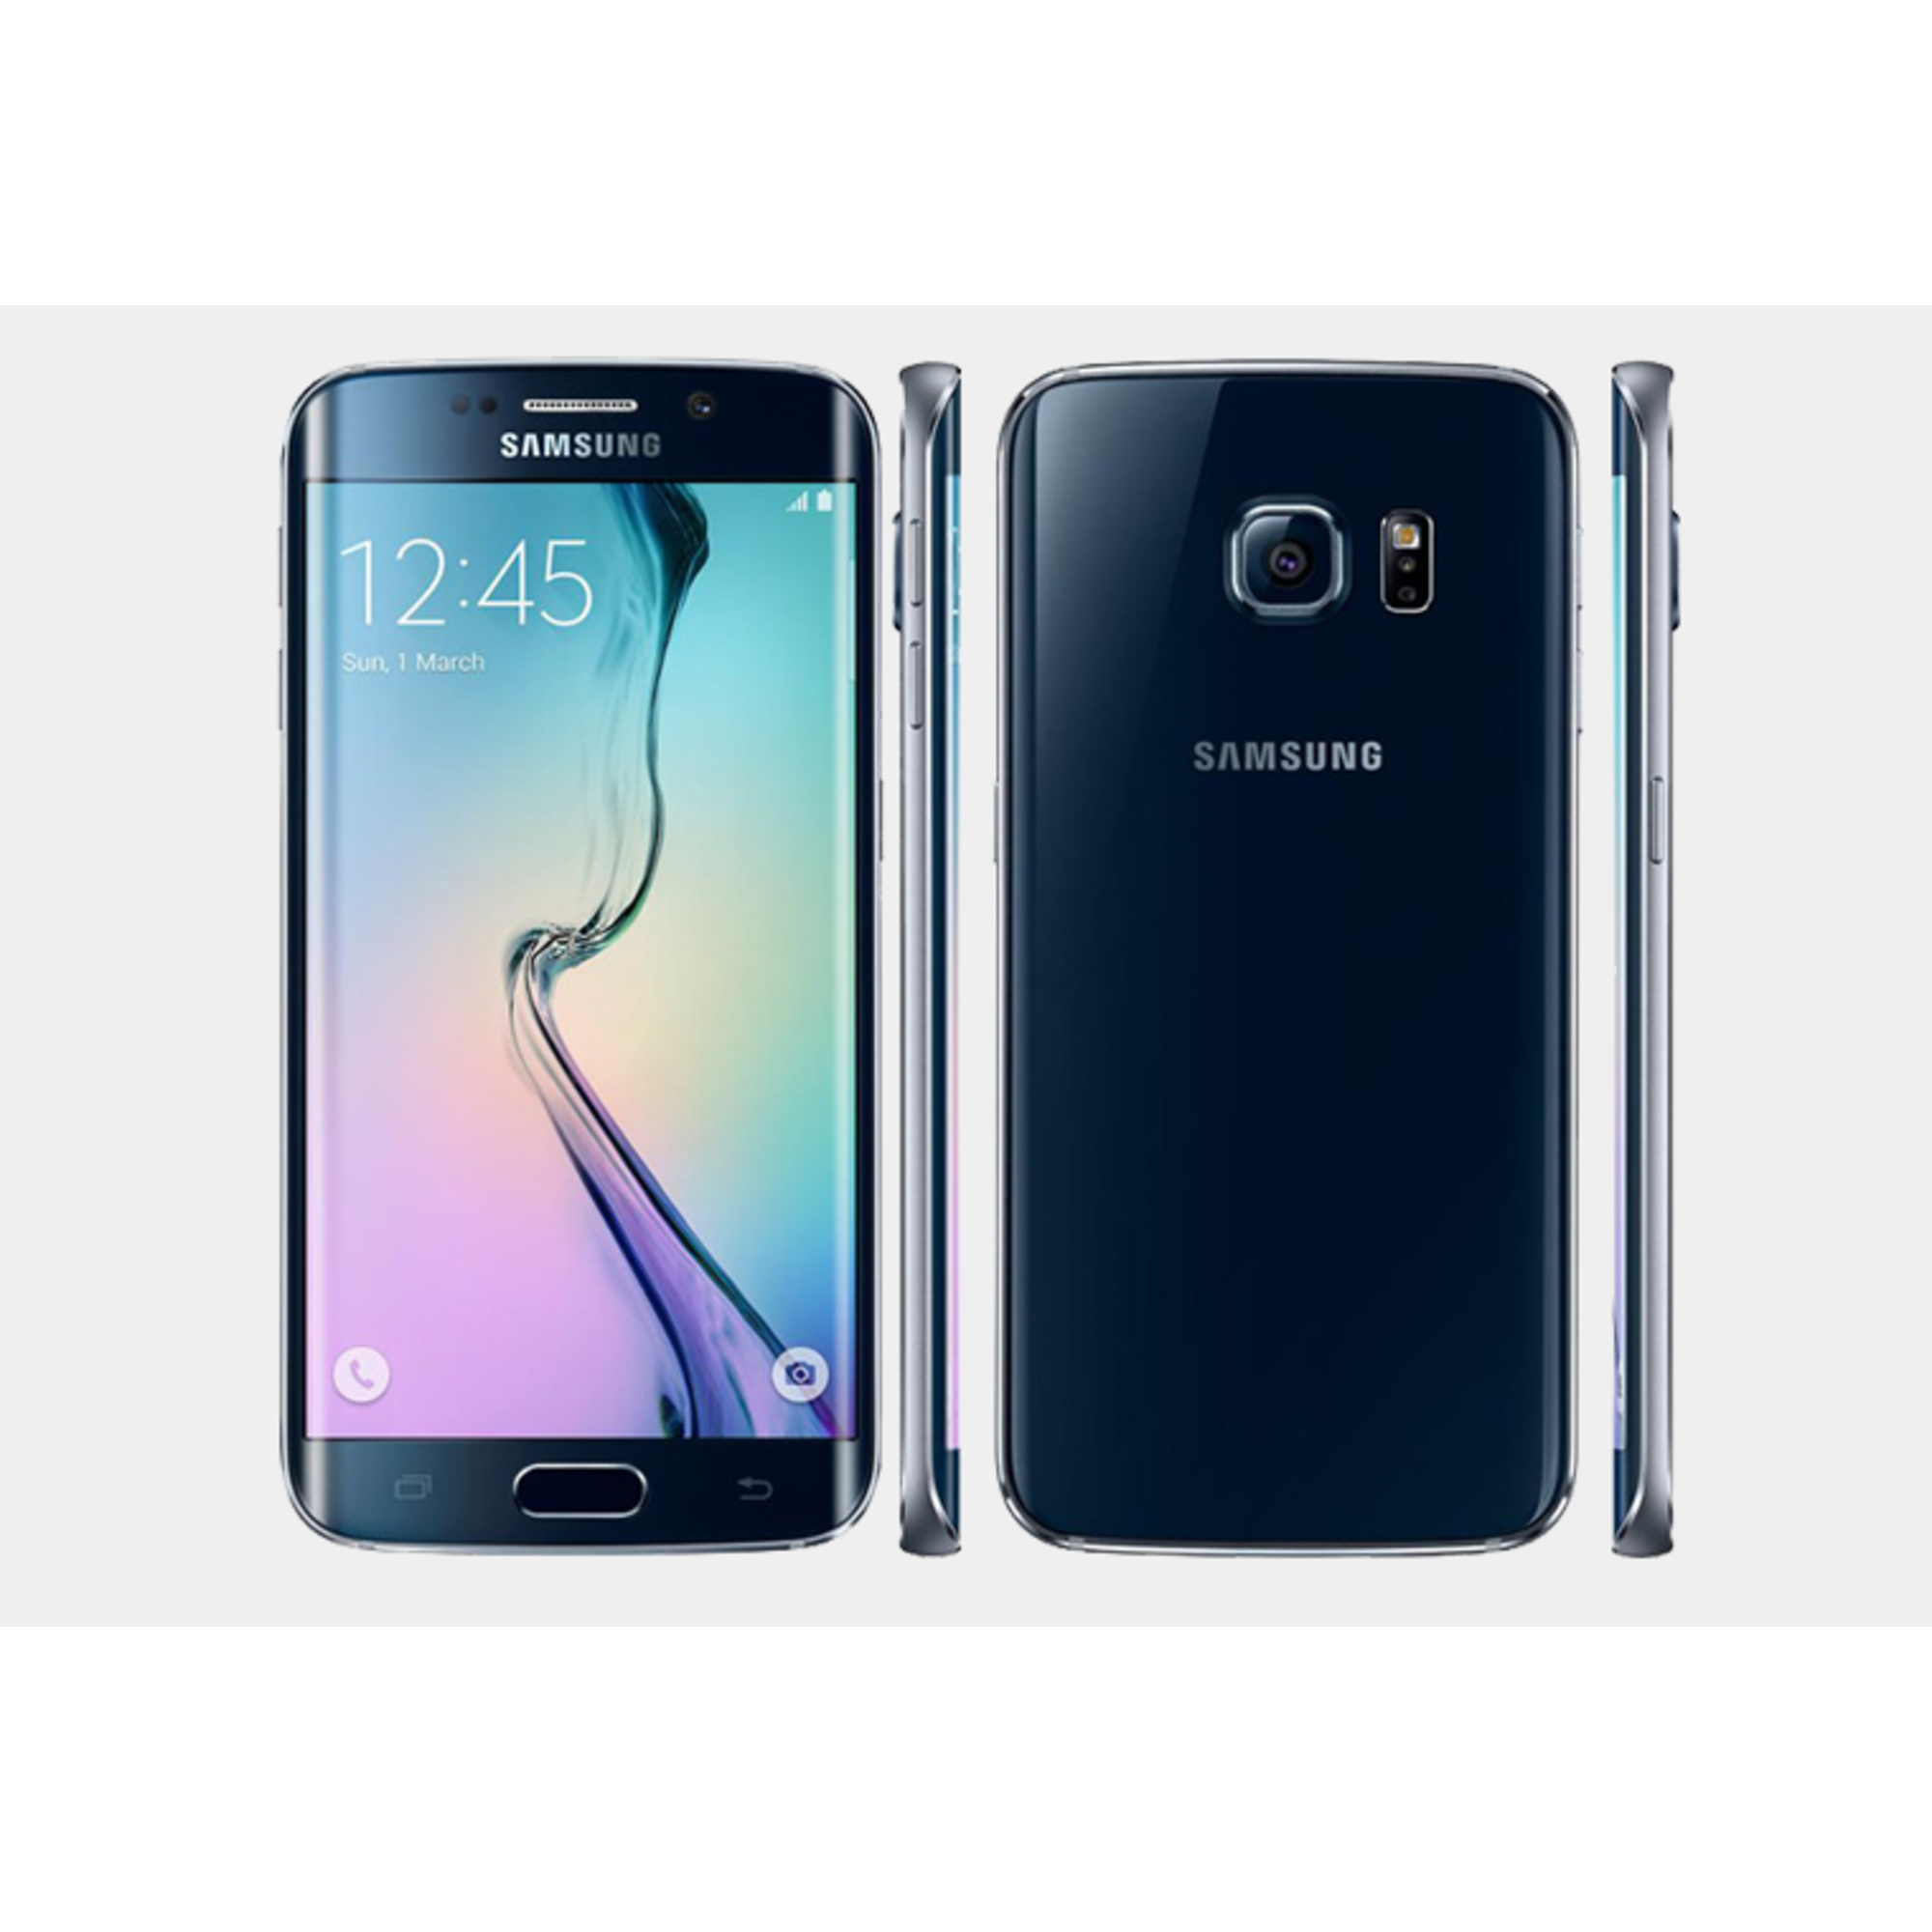 samsung galaxy s6 edge 32gb unlocked gsm lte 16mp phone. Black Bedroom Furniture Sets. Home Design Ideas